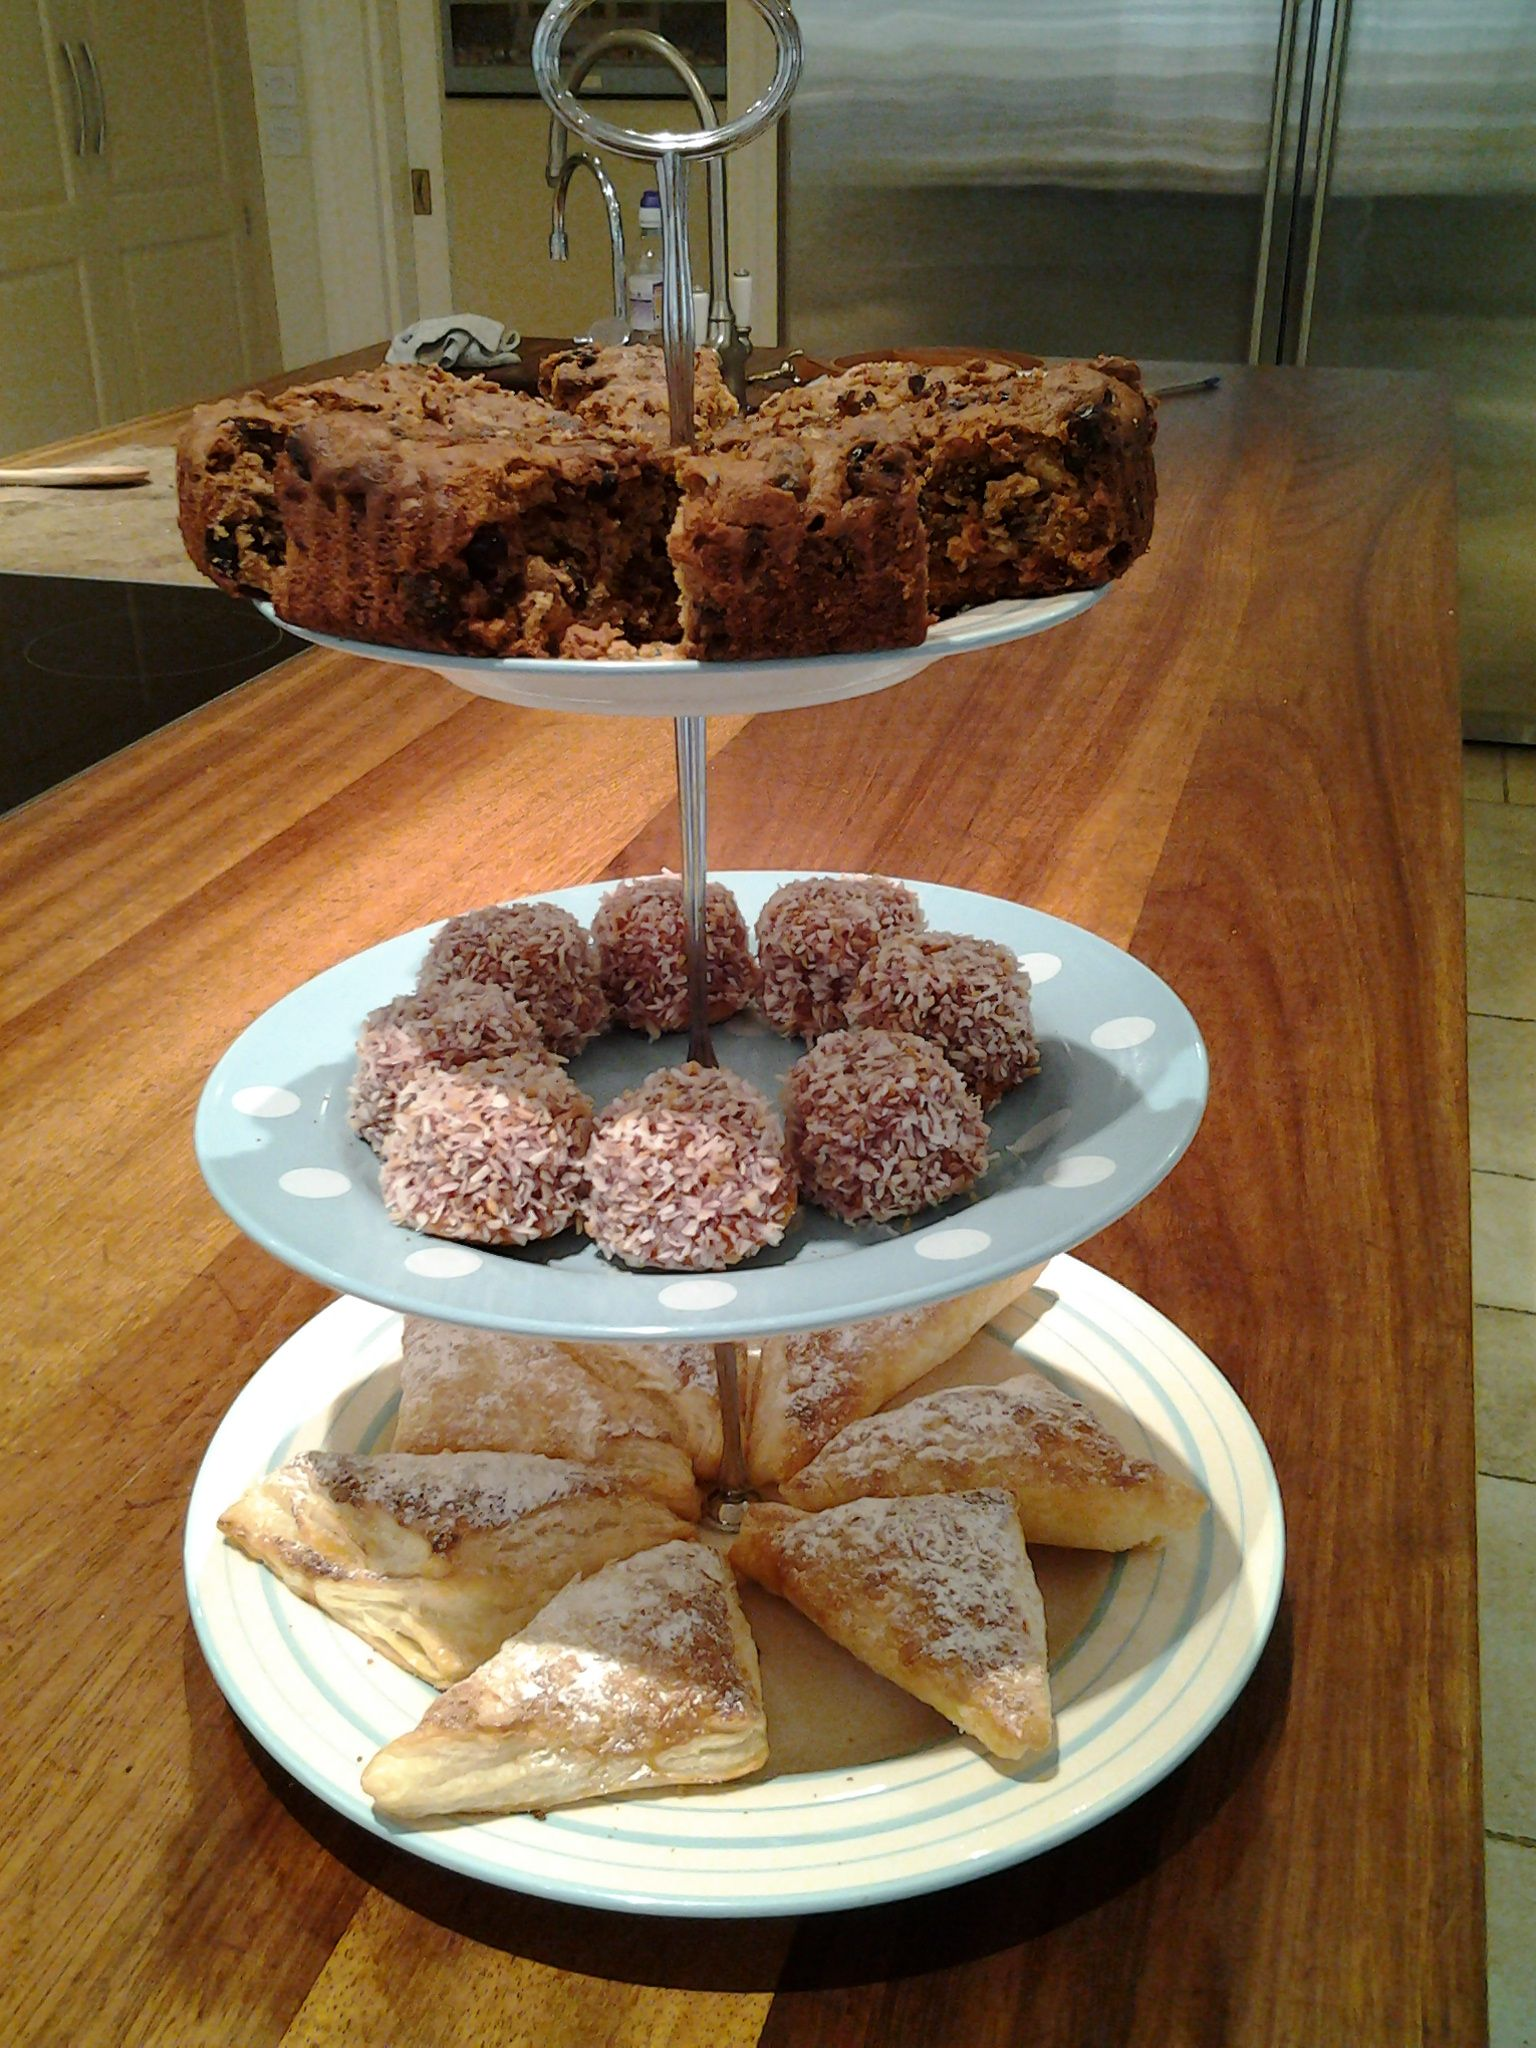 Afternoon tea cake stand, three different cakes every day, here we have a rich sherry fruit cake, coconut maderlains, and lemon puffs.